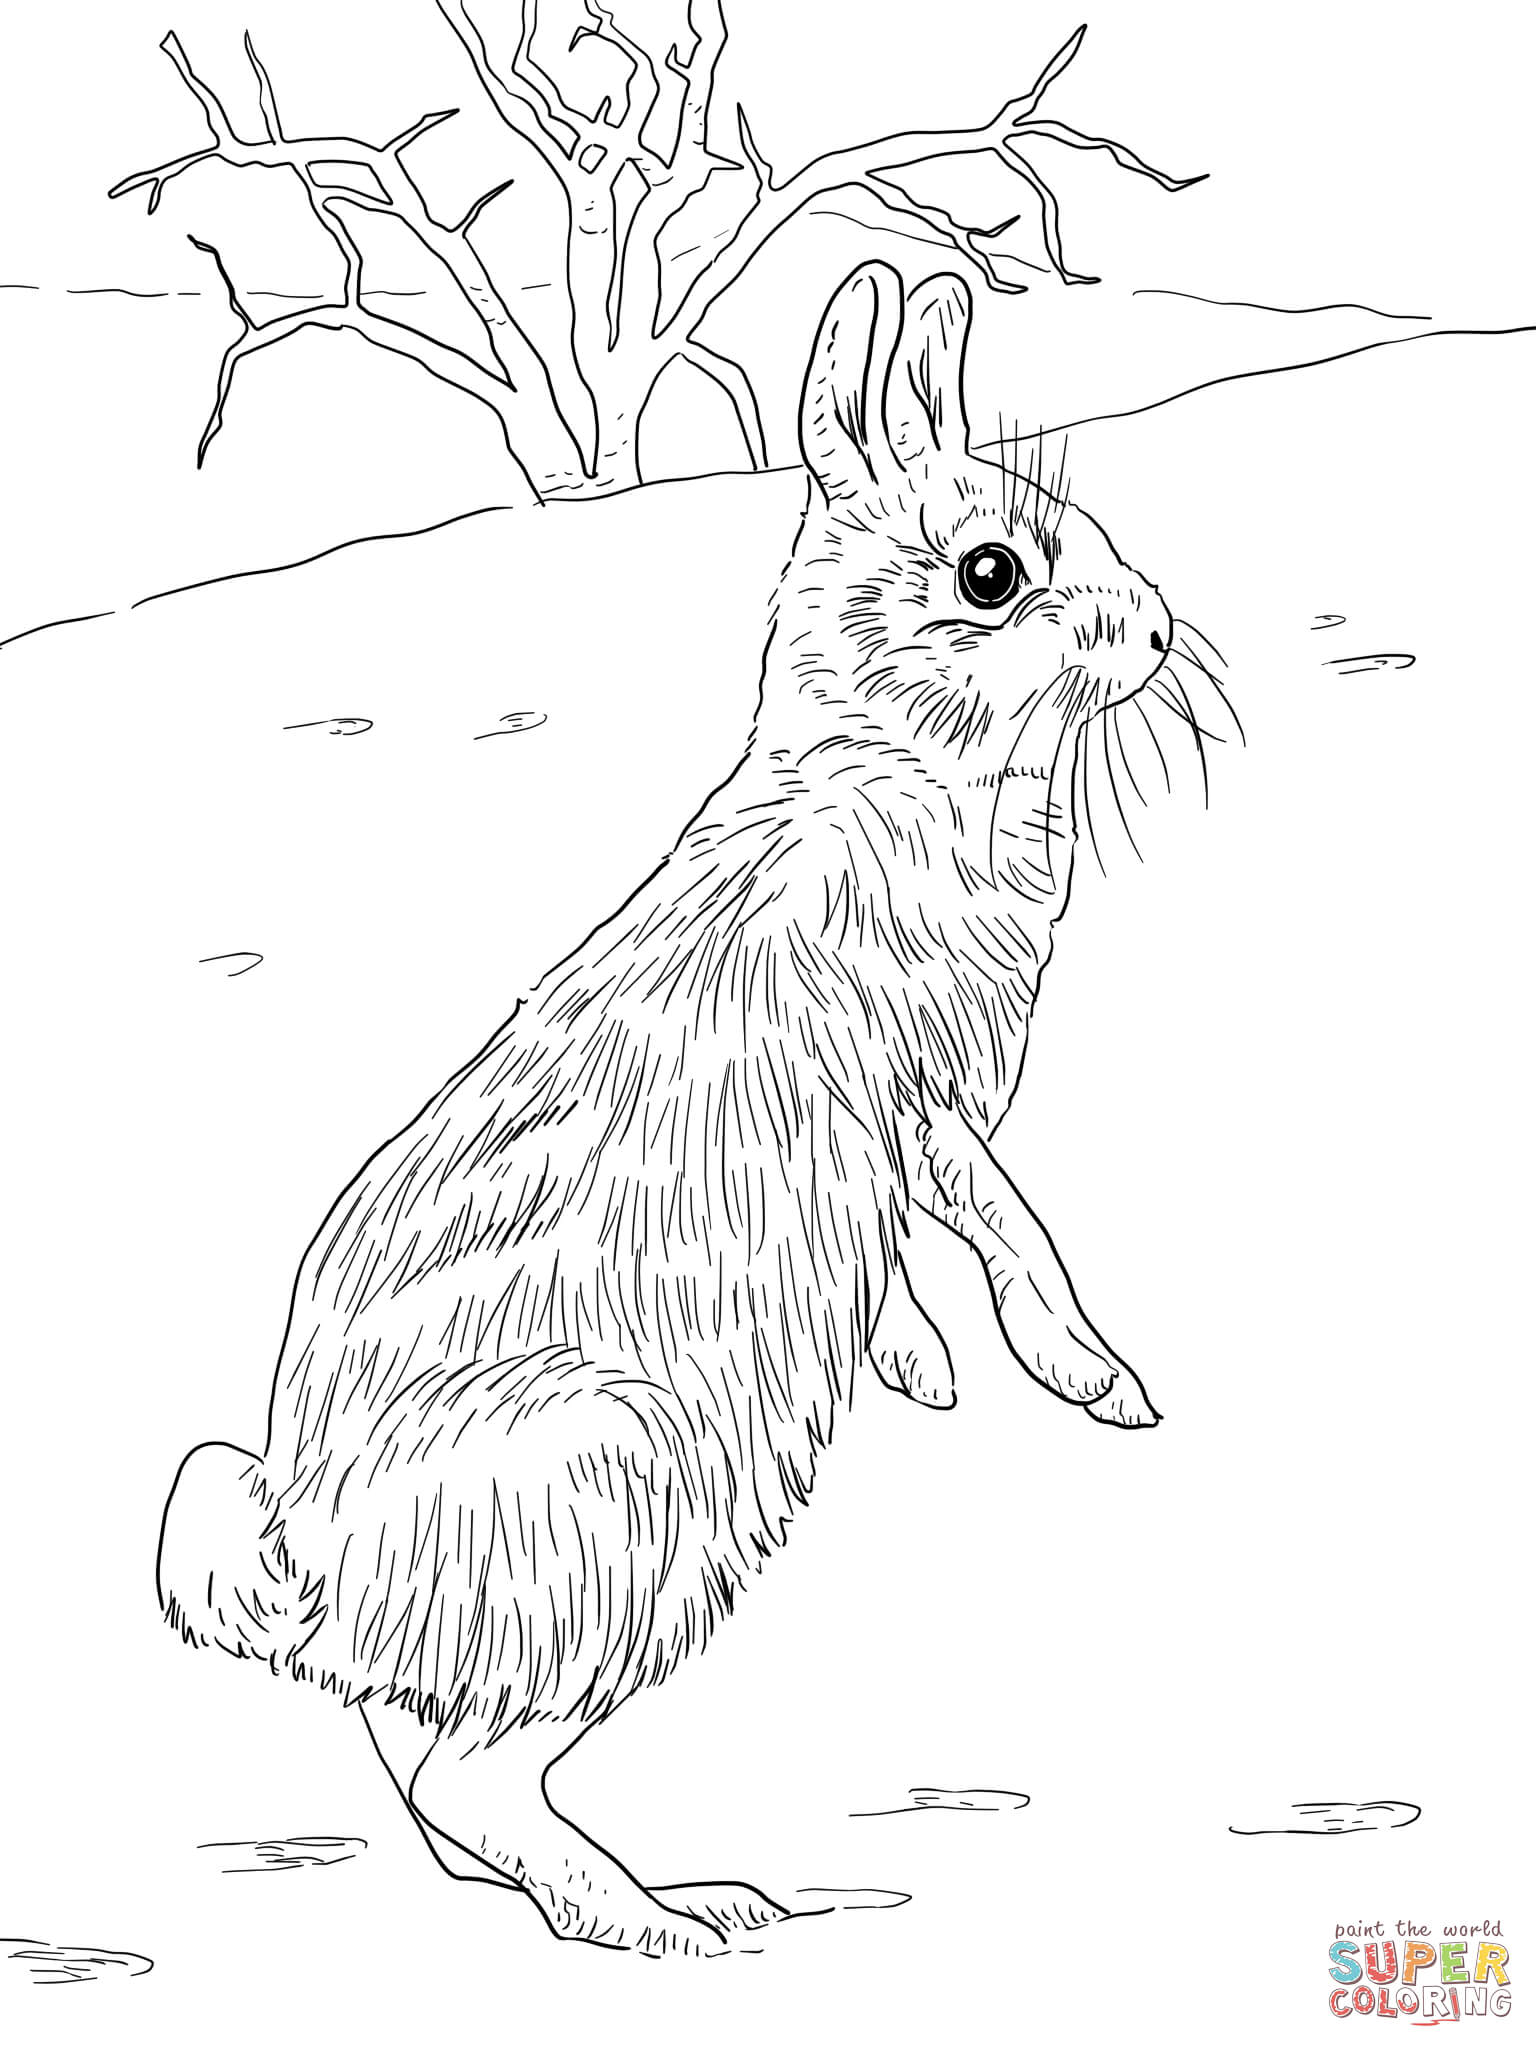 Standing Rabbit Drawing at GetDrawings.com | Free for personal use ...